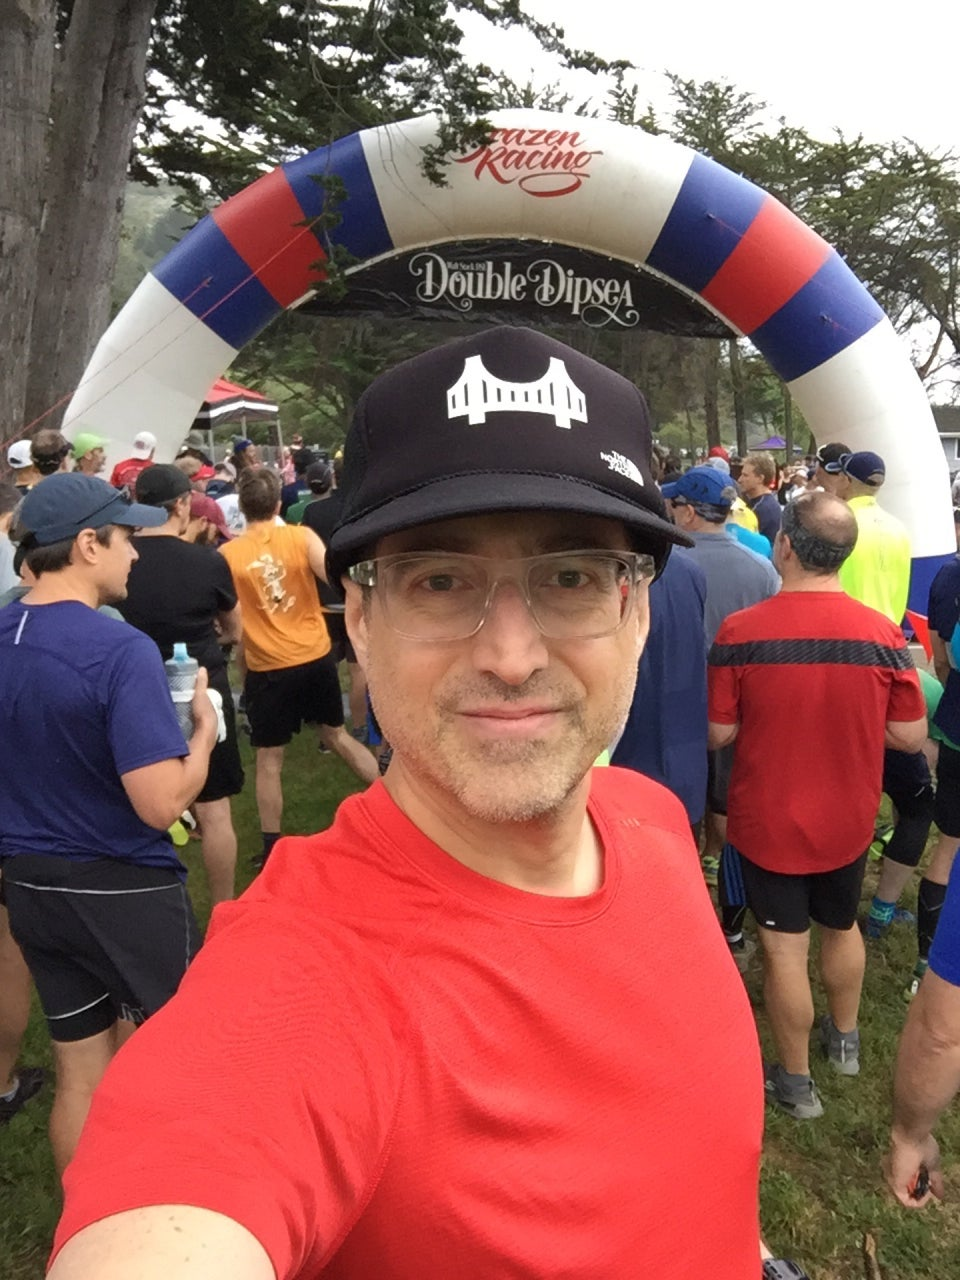 Tantek selfie behind a bunch of other guys preparing to start their wave at the Double Dipsea race